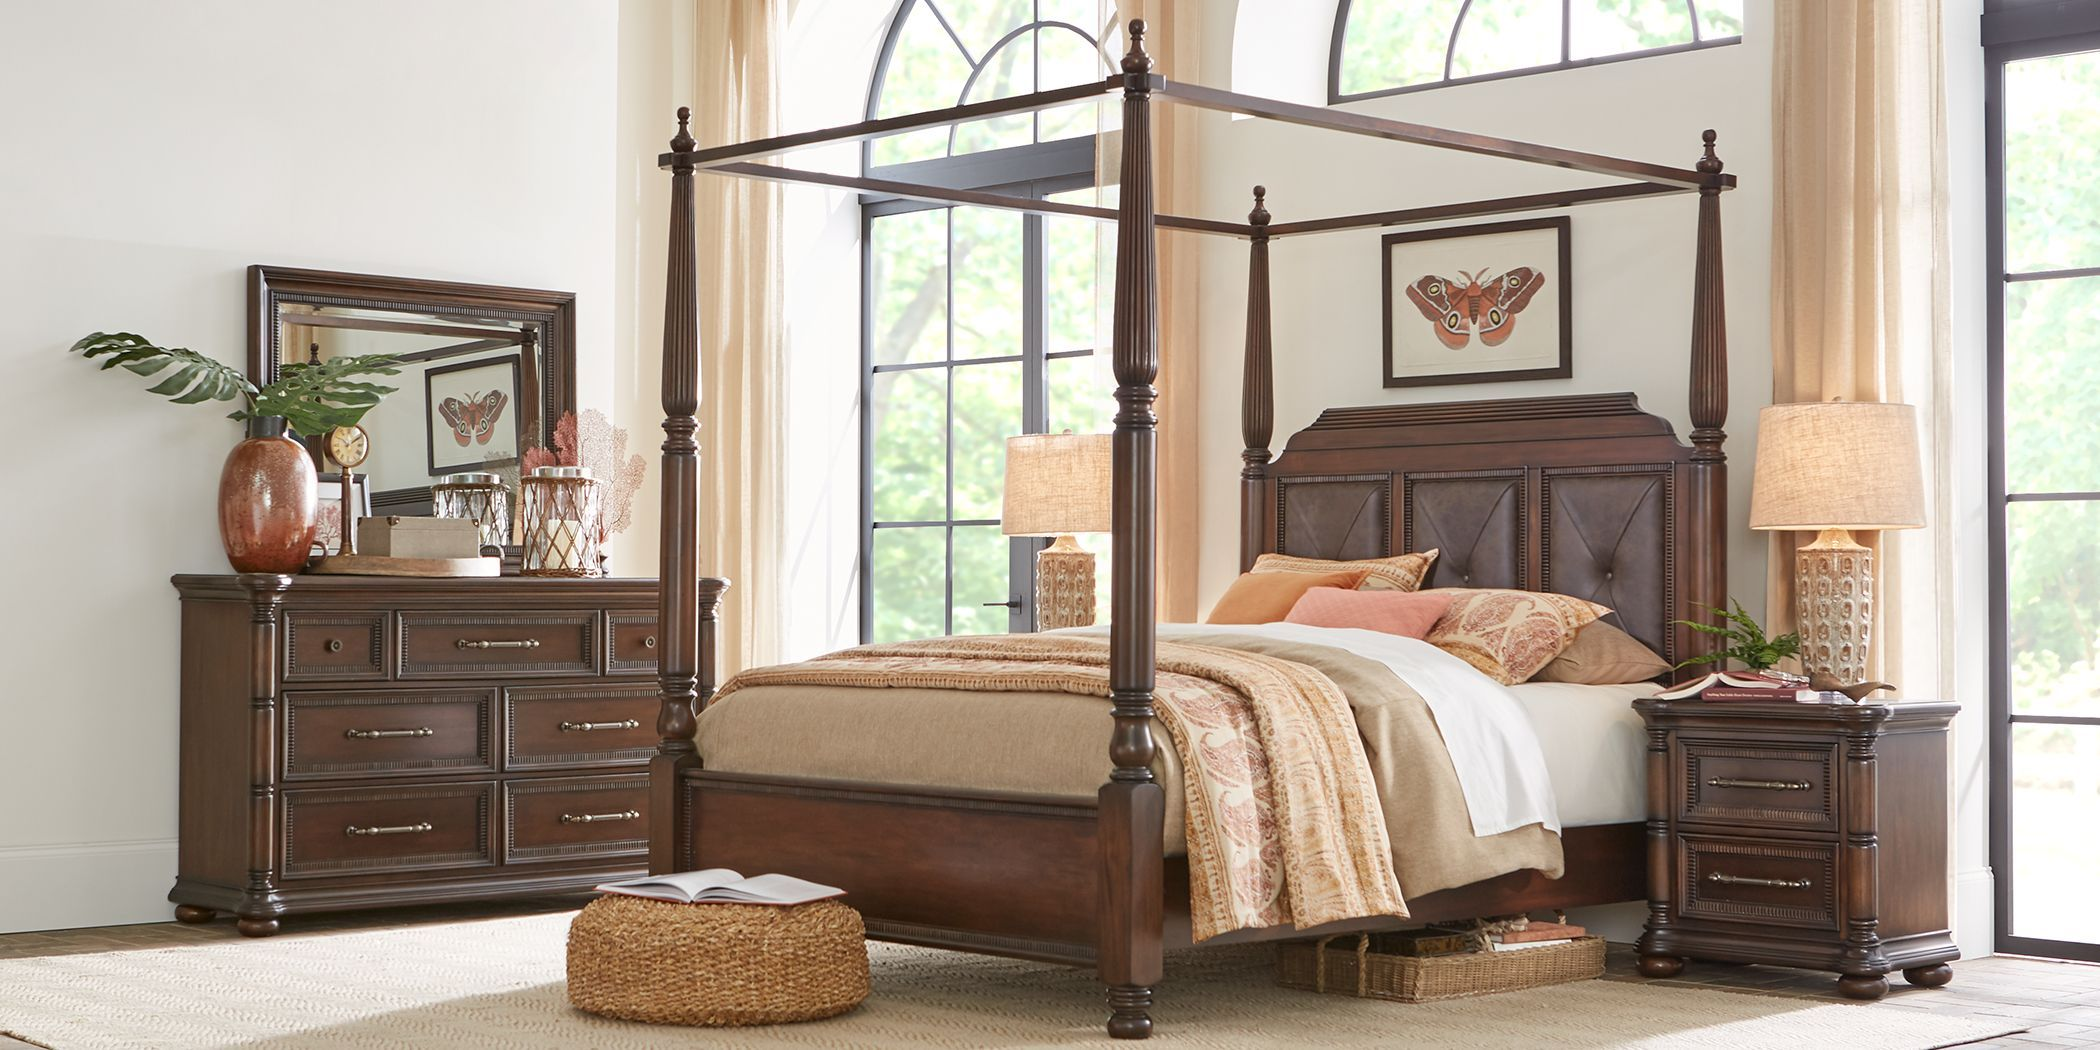 Cindy Crawford Home Grand Cayman Brown 8 Pc King Canopy Bedroom Bedroom Furniture Sets Furniture Queen Sized Bedroom